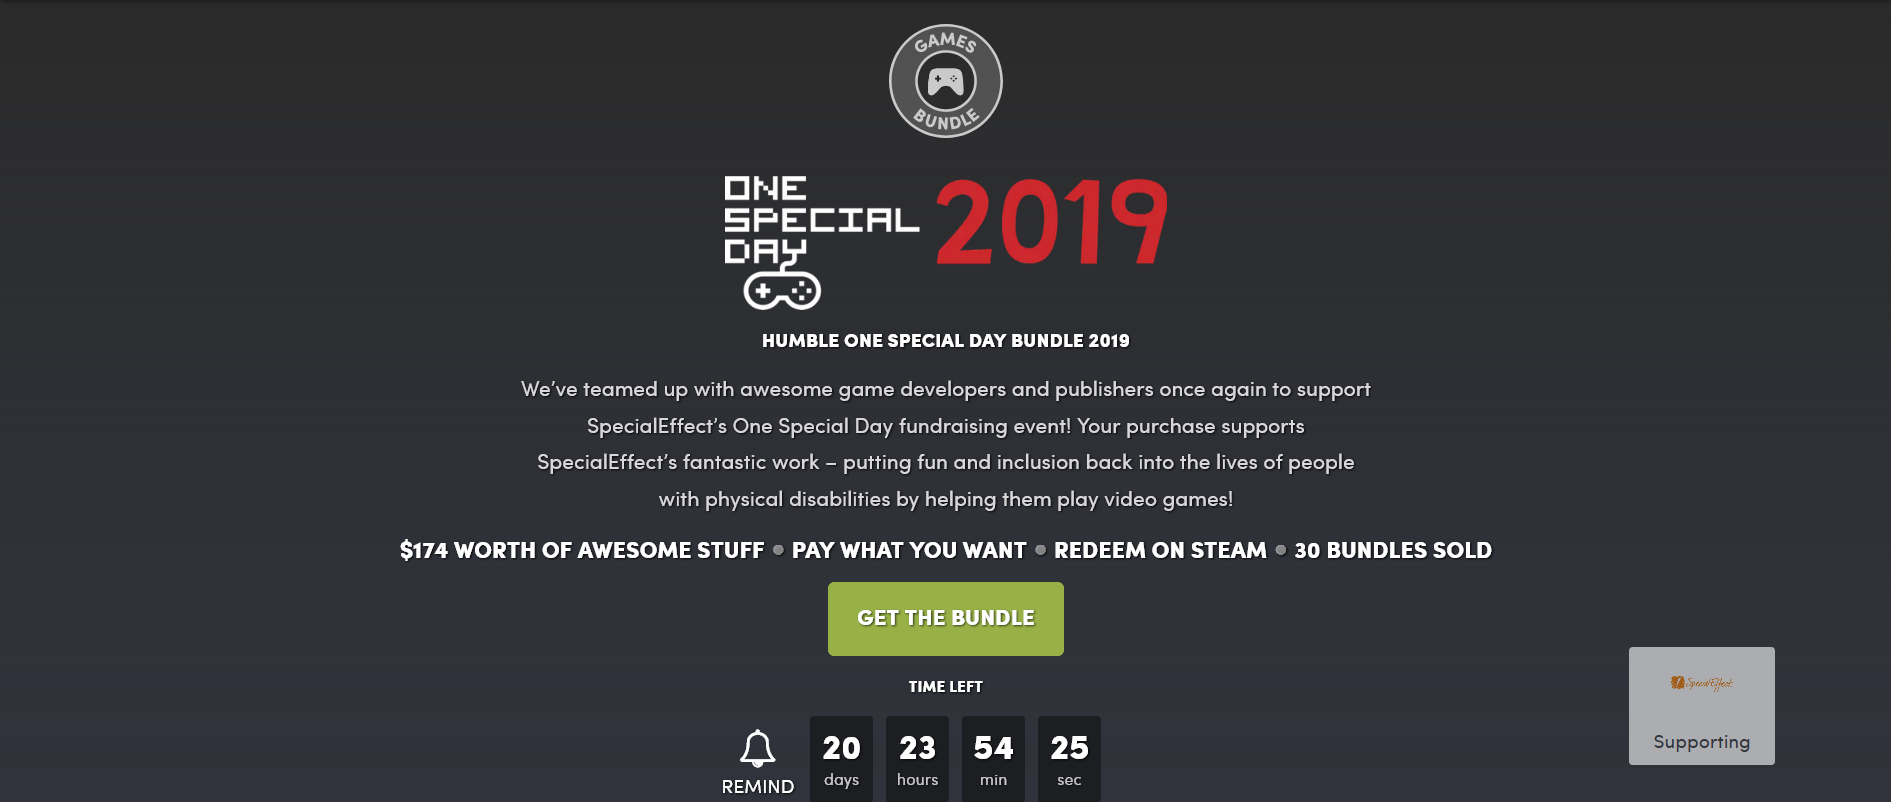 Screenshot_2019-10-02 Humble One Special Day Bundle 2019.png